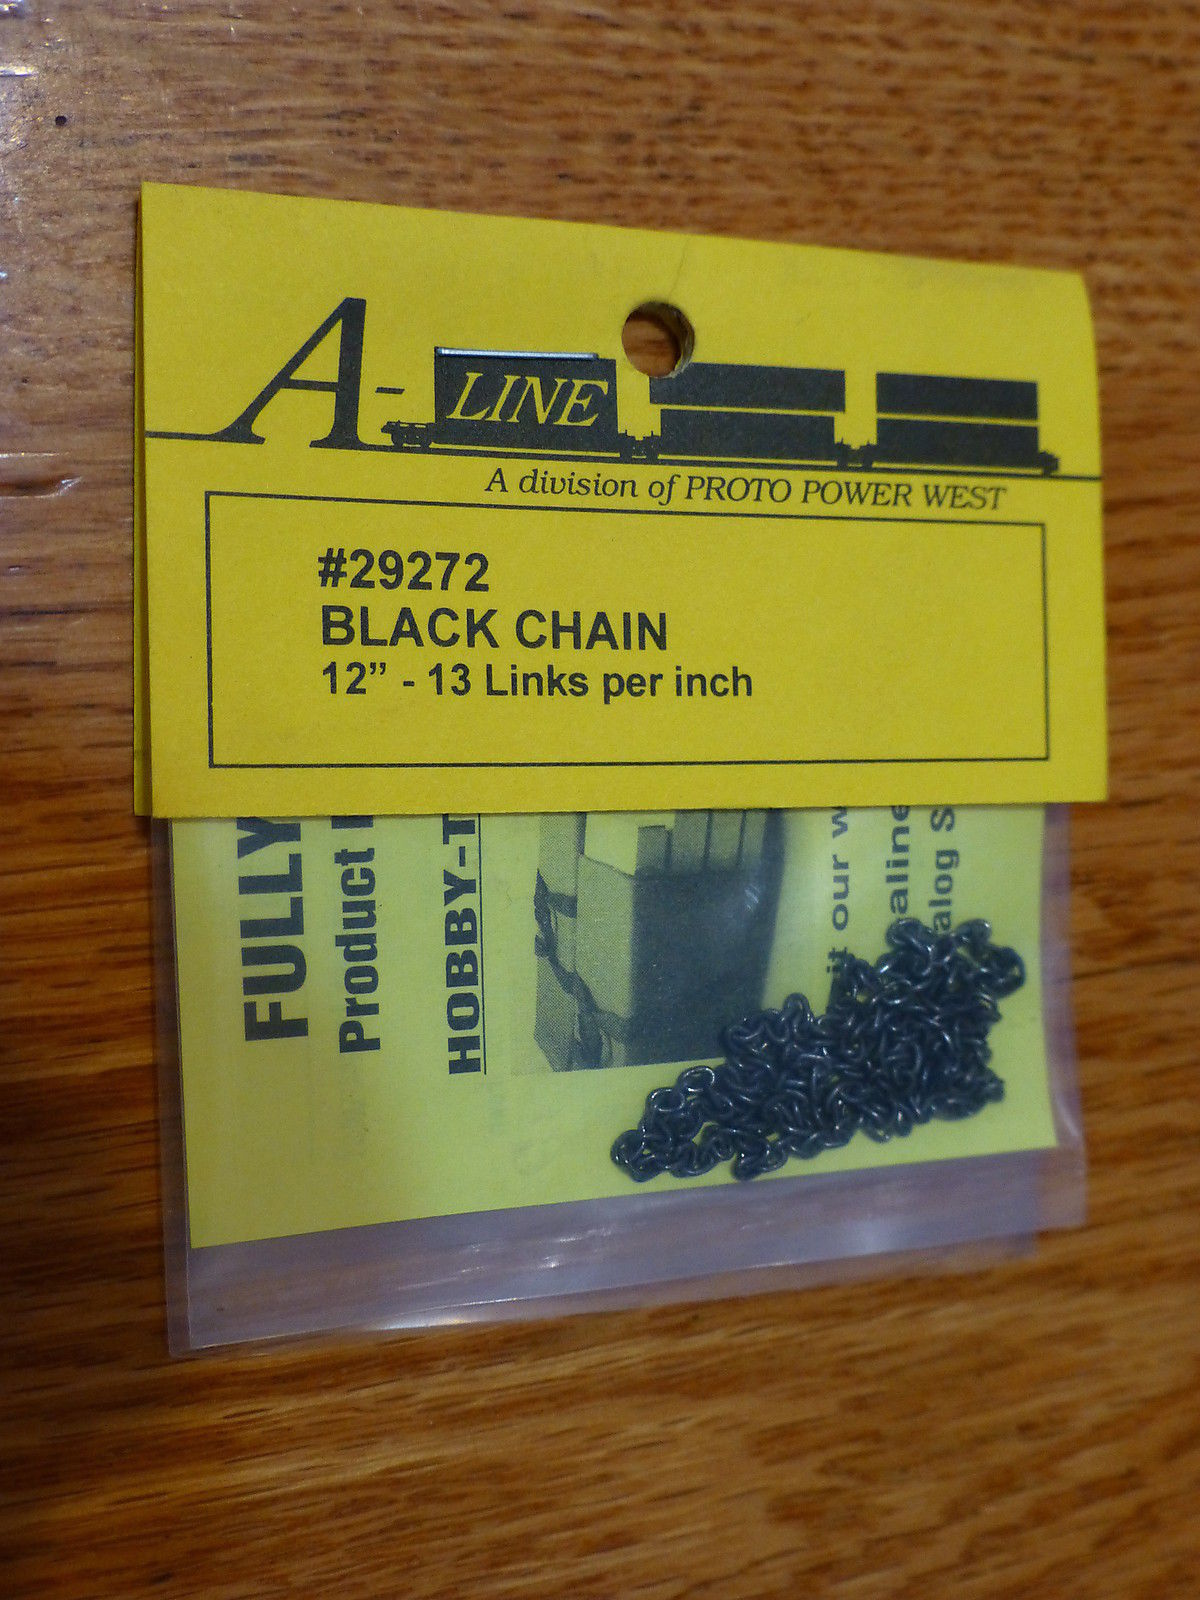 A-Line 29270 HO Tie Down Chain - Brass 13 Links Per Inch This is an A-Line 29270 HO Scale Tie Down Chain - Brass 13 Links Per Inch. Brass Chain (12) - Used to tie down open loads on freight cars, vehicle trailers and locomotive handrails. Brass chain is packaged in 12 inch lengths.Condition: Factory New (C-9All original; unused; factory rubs and evidence of handling, shipping and factory test run.Standards for all toy train related accessory items apply to the visual appearance of the item and do not consider the operating functionality of the equipment.Condition and Grading Standards are subjective, at best, and are intended to act as a guide. )Operational Status: FunctionalThis item is brand new from the factory.Original Box: Yes (P-9May have store stamps and price tags. Has inner liners.)Manufacturer: A-LineModel Number: 29270MSRP: $4.50Scale/Era: HO ModernModel Type: AccessoriesAvailability: Ships in 3 to 5 Business Days.The Trainz SKU for this item is P11953879. Track: 11953879 - FS - 001 - TrainzAuctionGroup00UNK - TDIDUNK